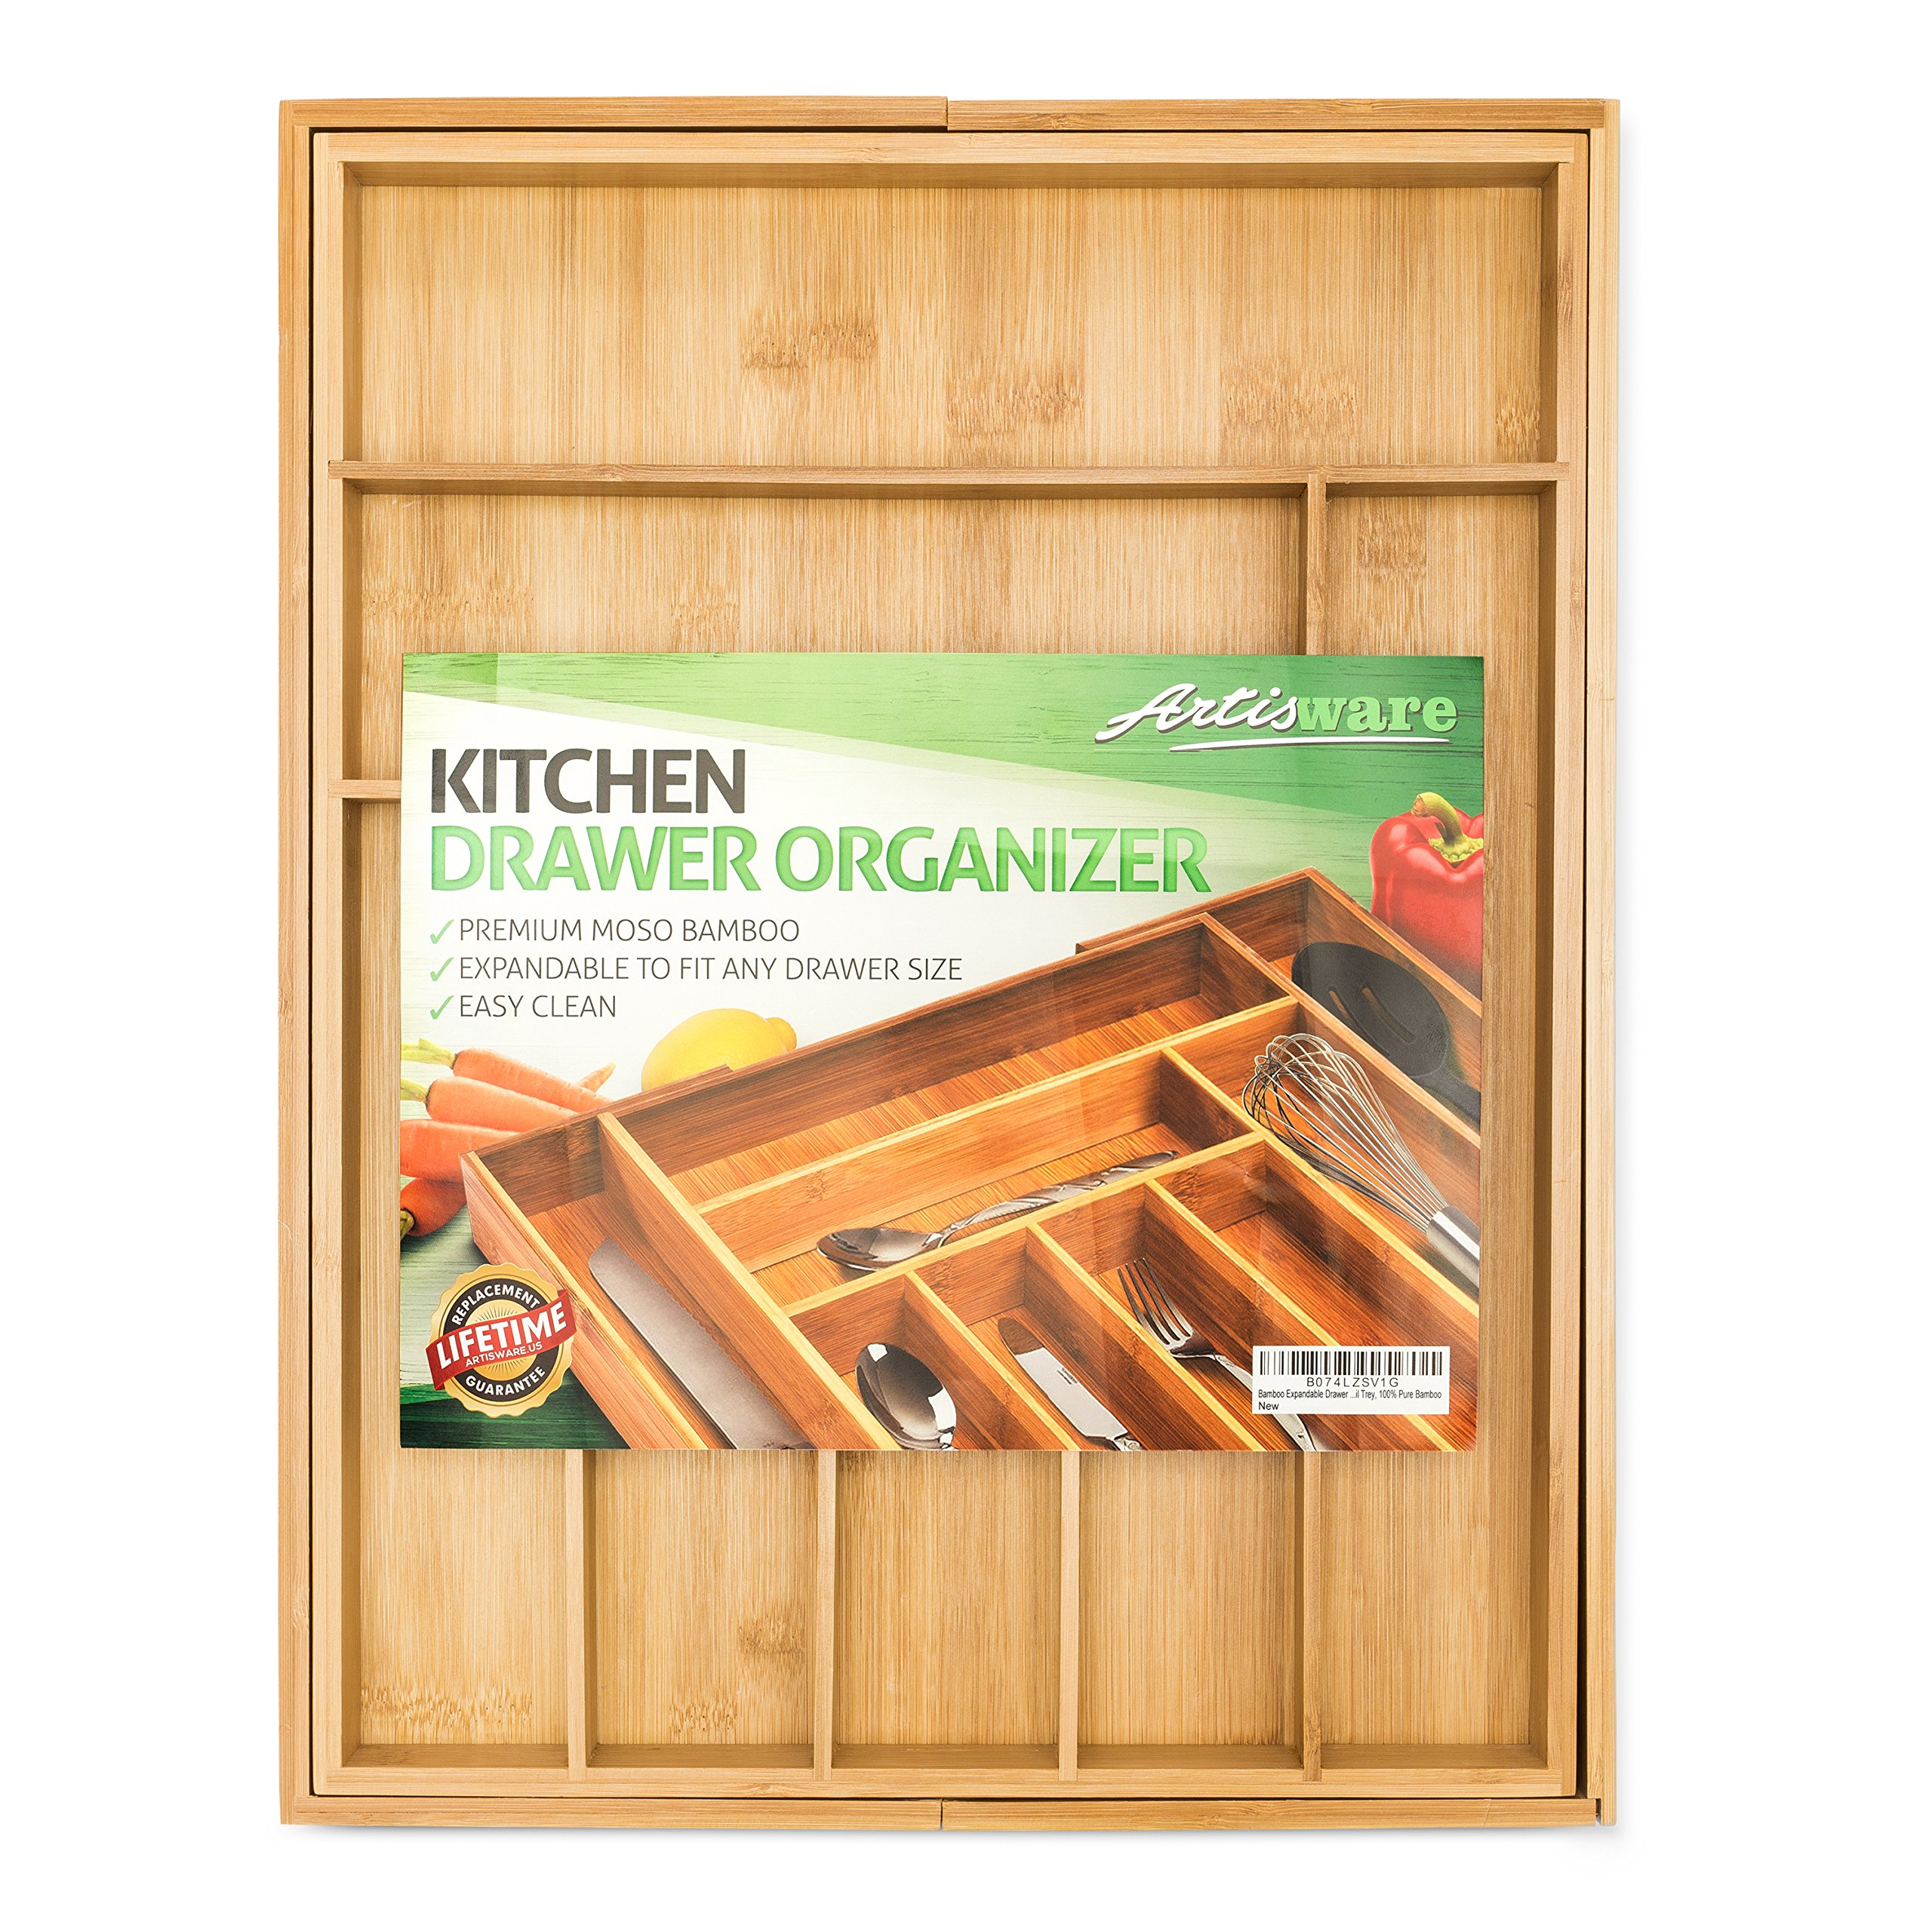 Bamboo Expandable Drawer Organizer, Premium Cutlery and Utensil Tray, 100% Pure Bamboo, Adjustable Kitchen Drawer Divider ... (7 Compartments Expandable) by Artisware (Image #2)